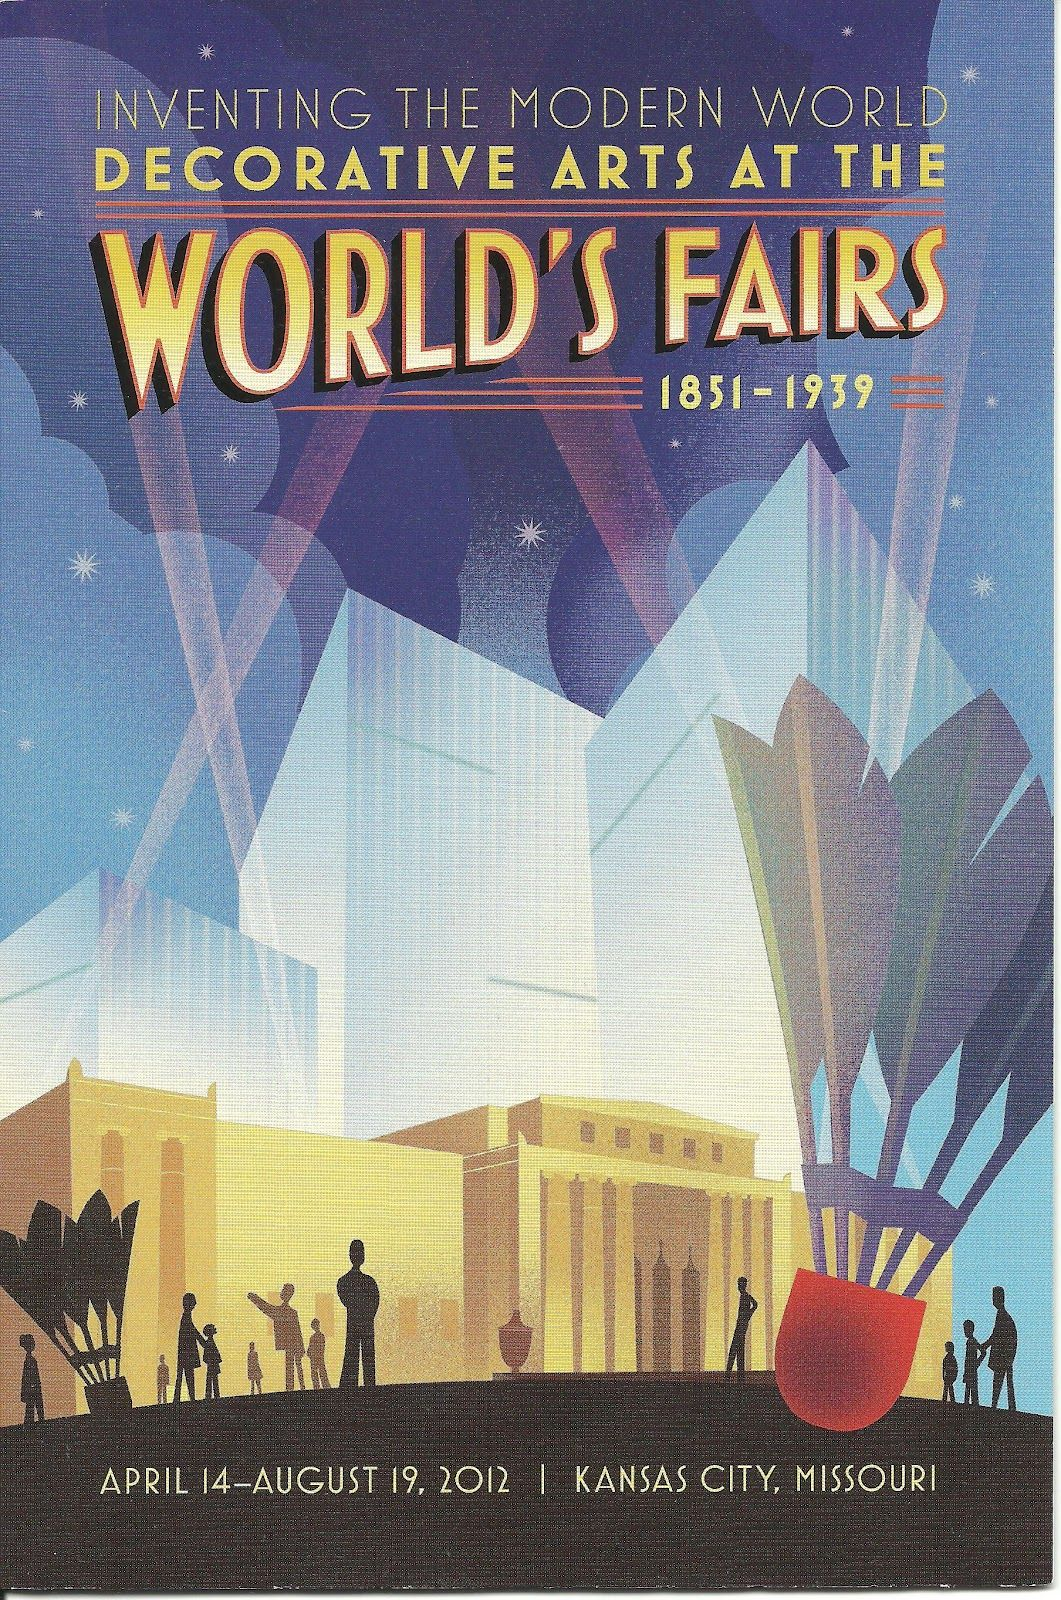 Pin by Paul Kimo McGregor on World's Fairs and Expositions